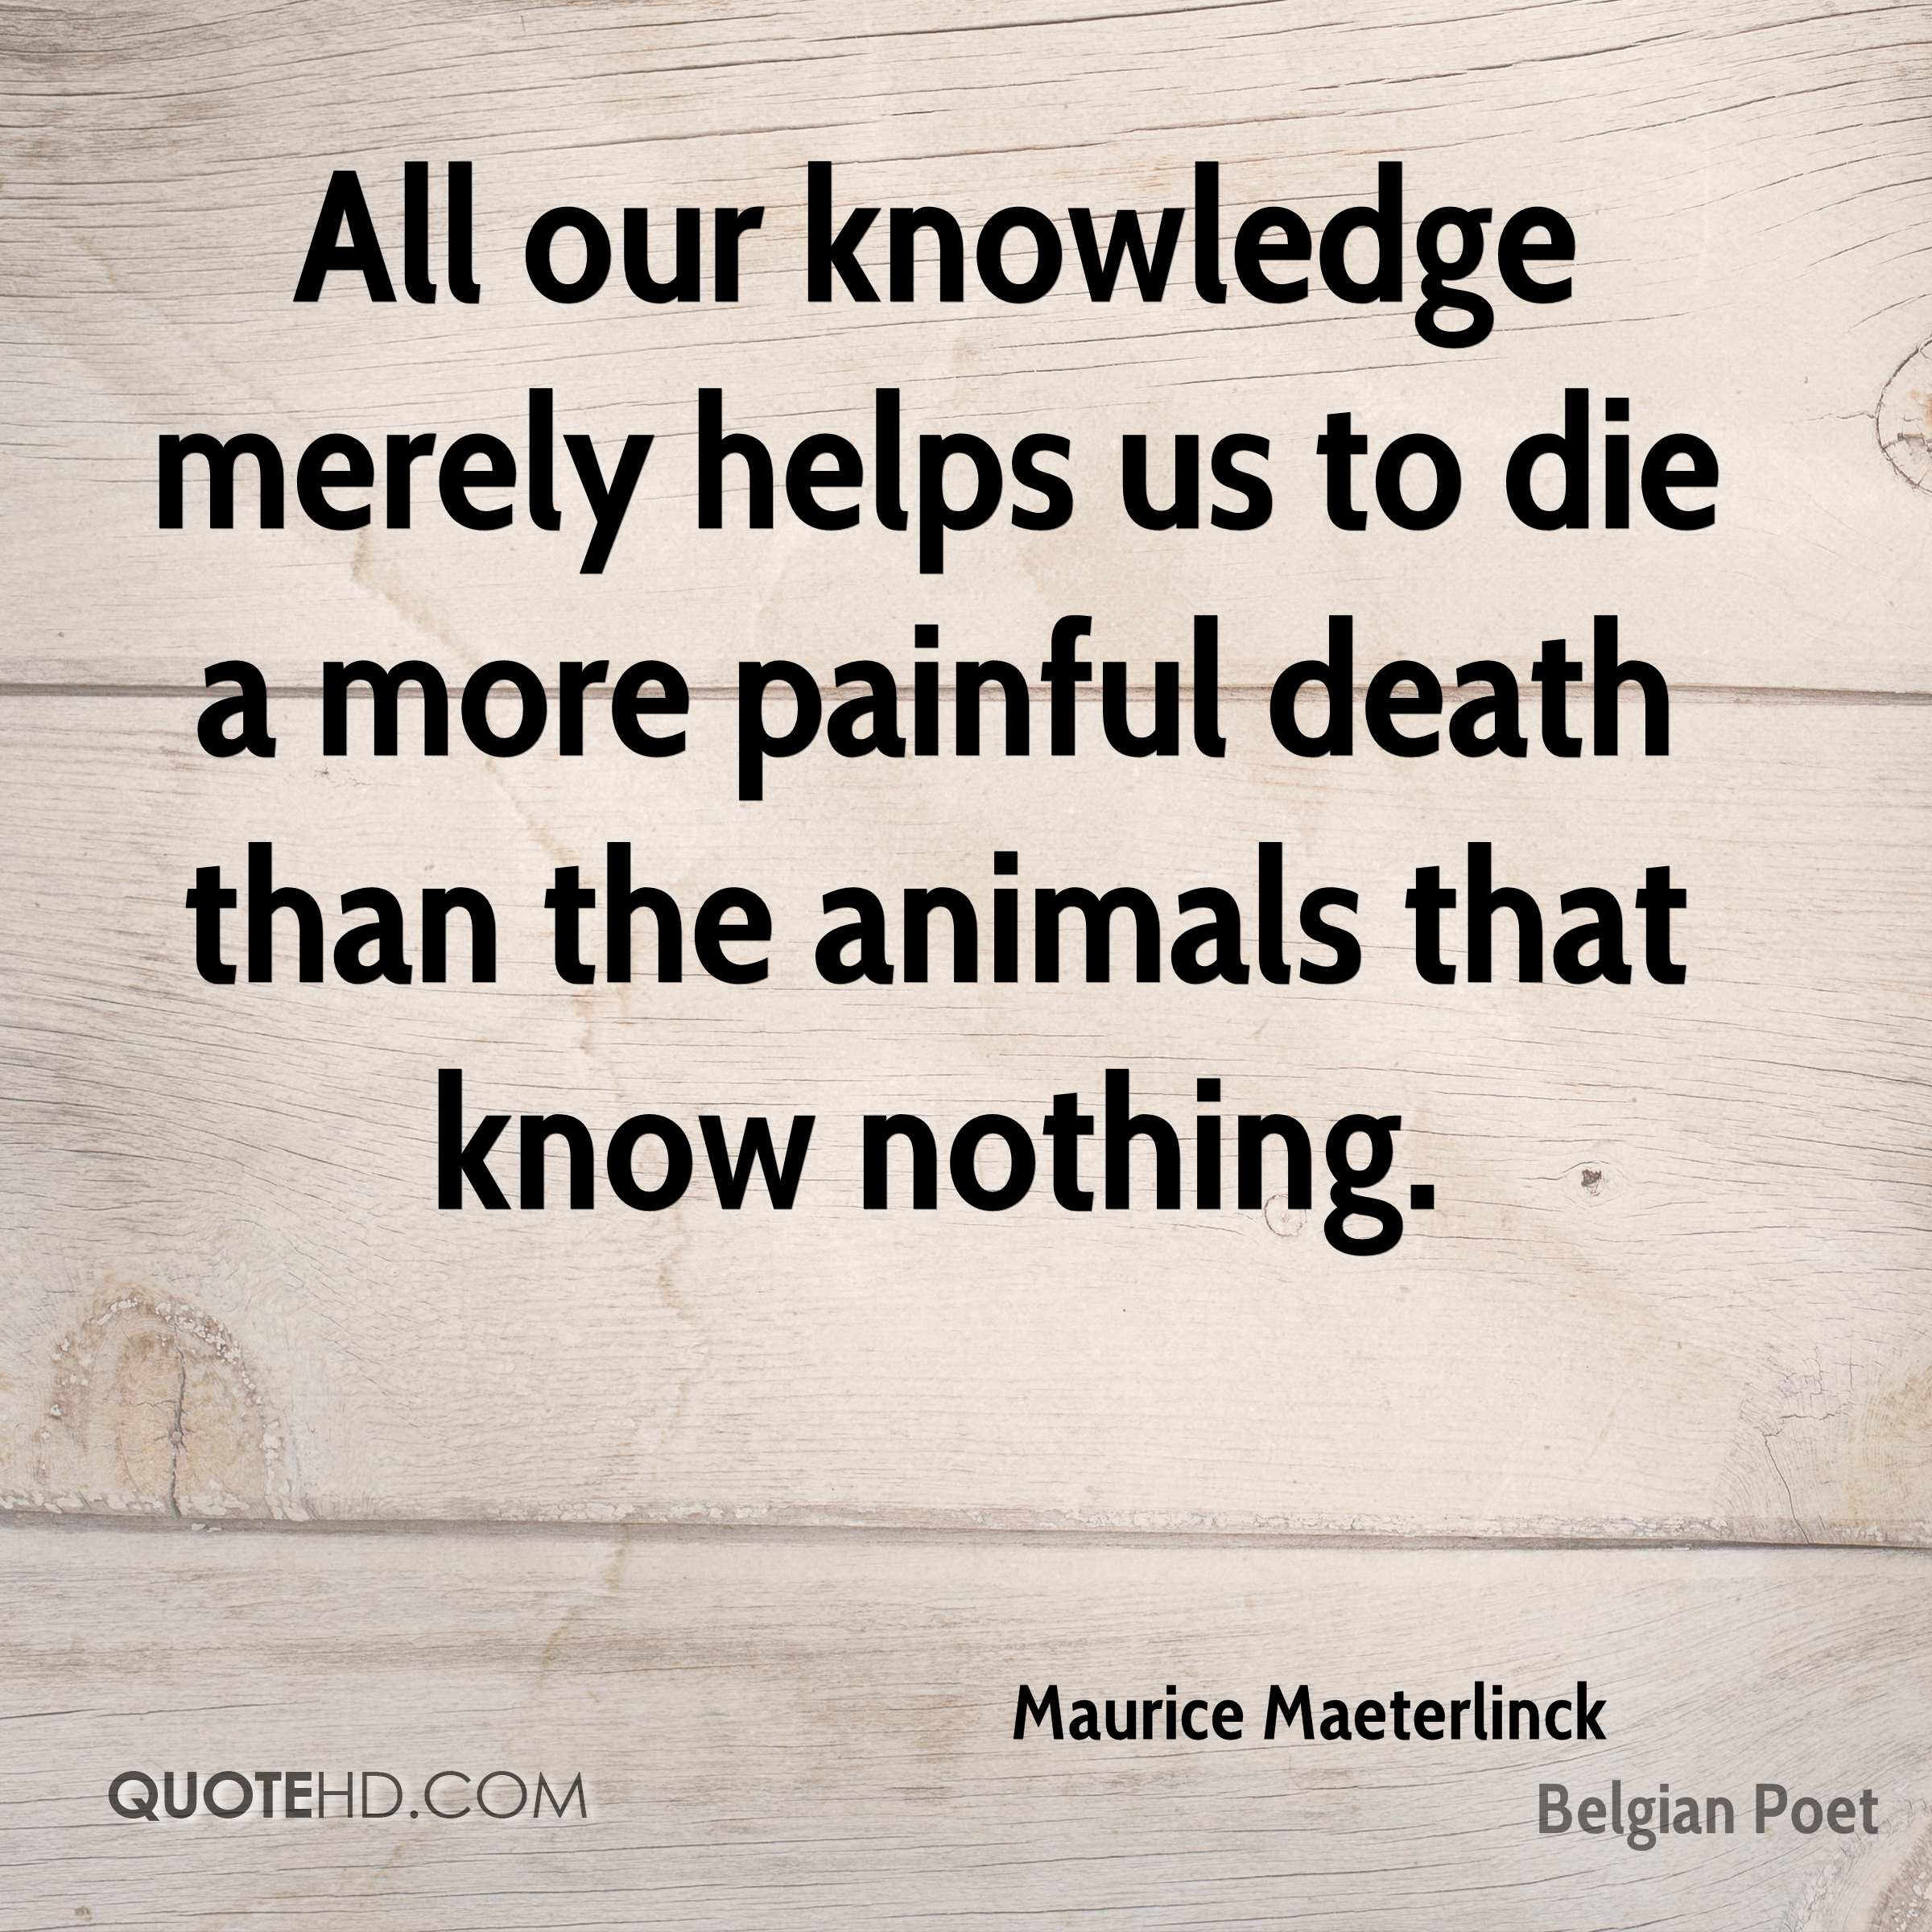 All our knowledge merely helps us to die a more painful death than the animals that know nothing.